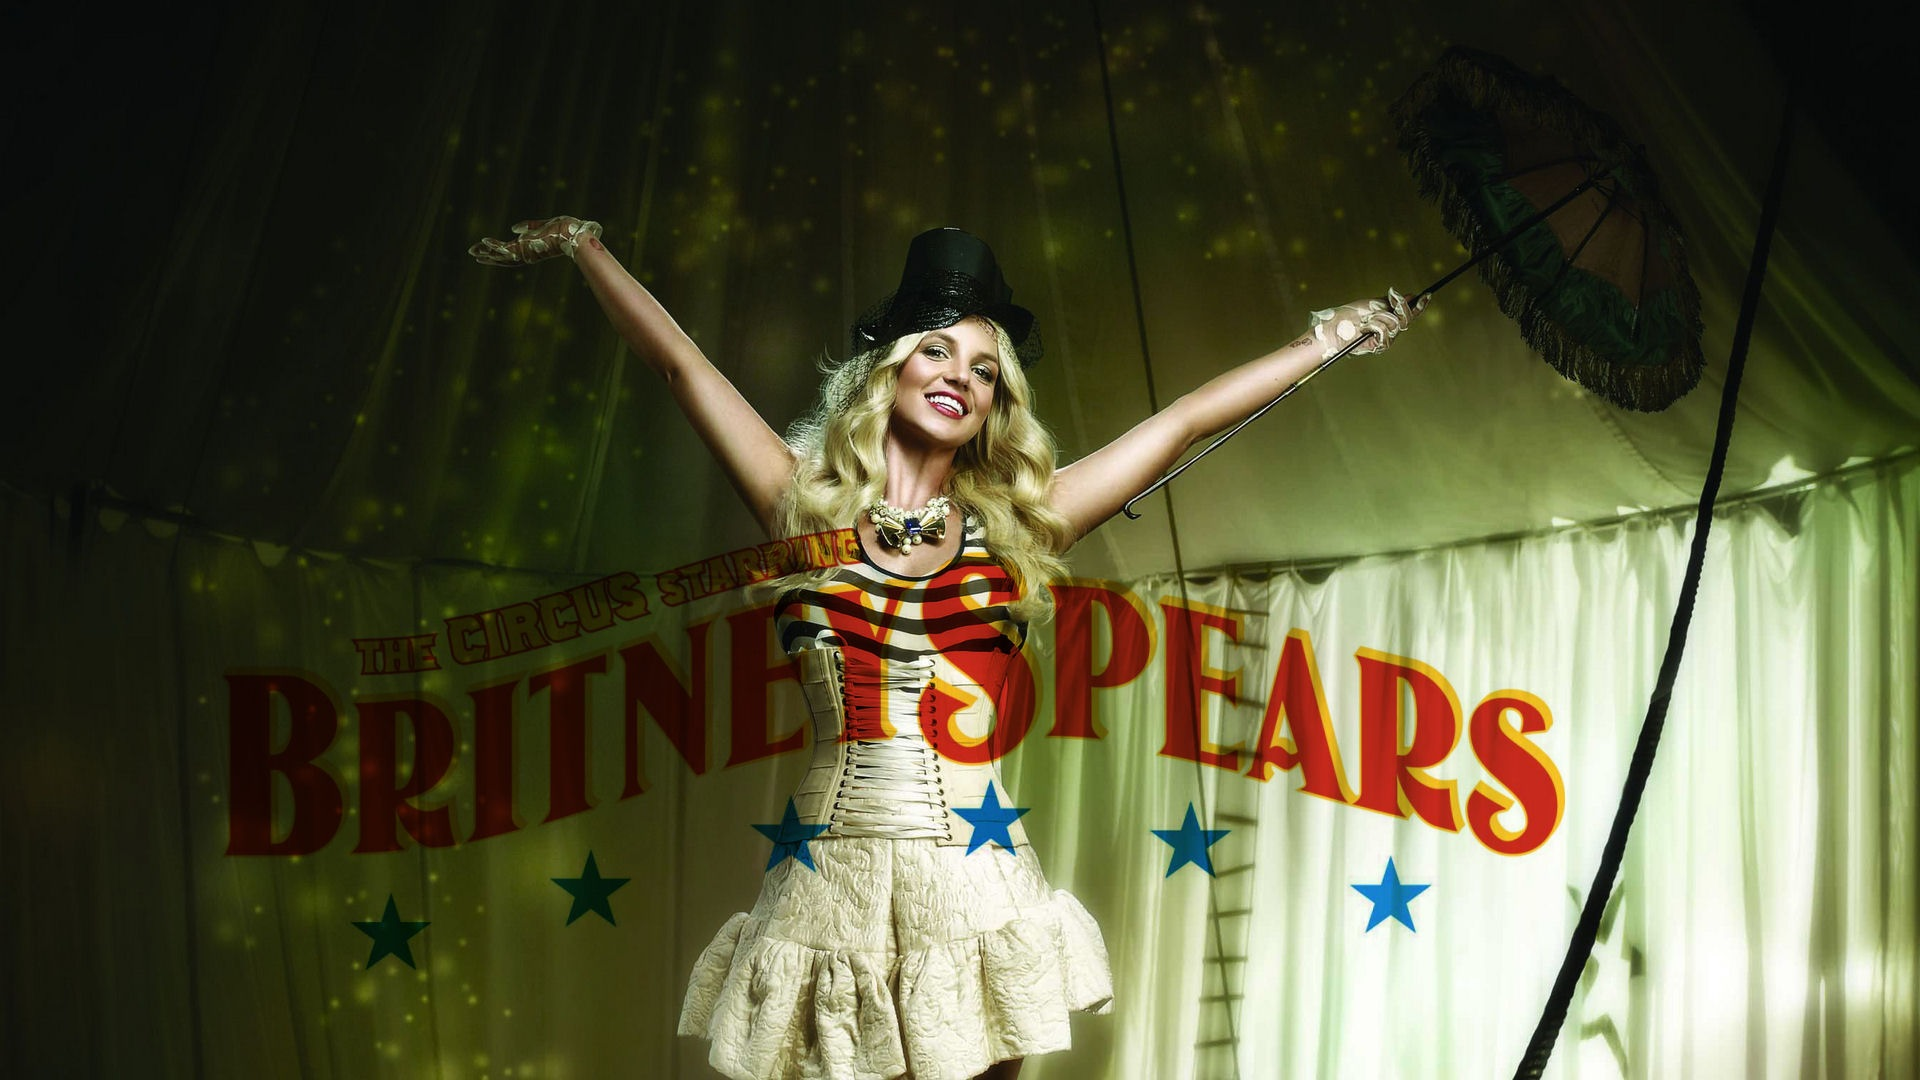 britney spears circus album